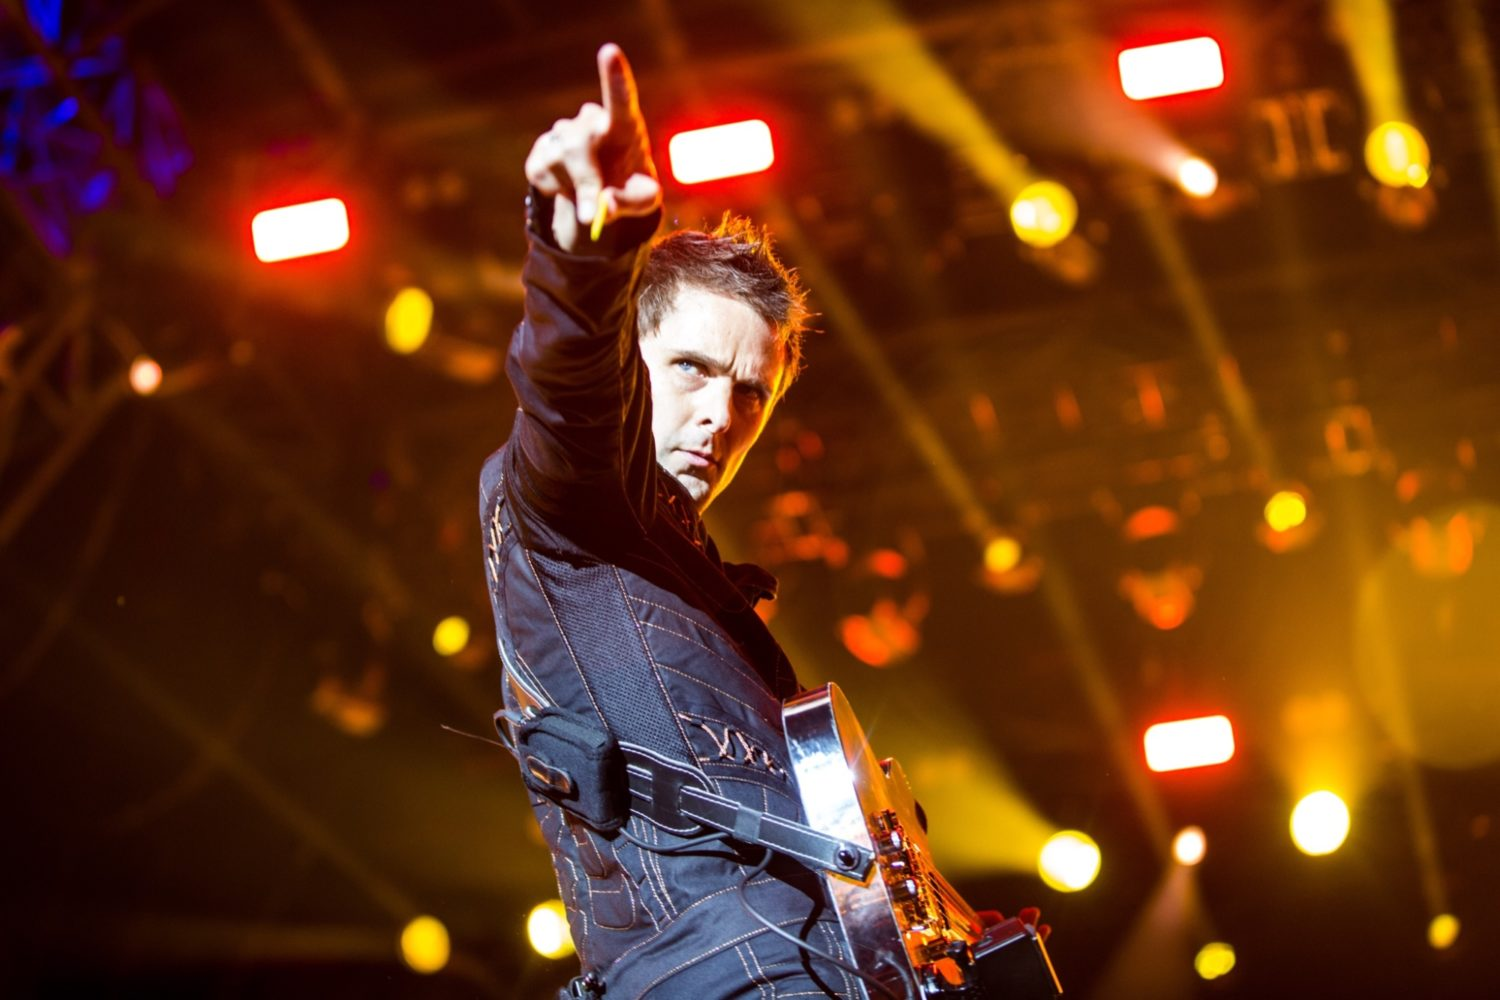 Muse bring out the oldies at charity fan-request gig